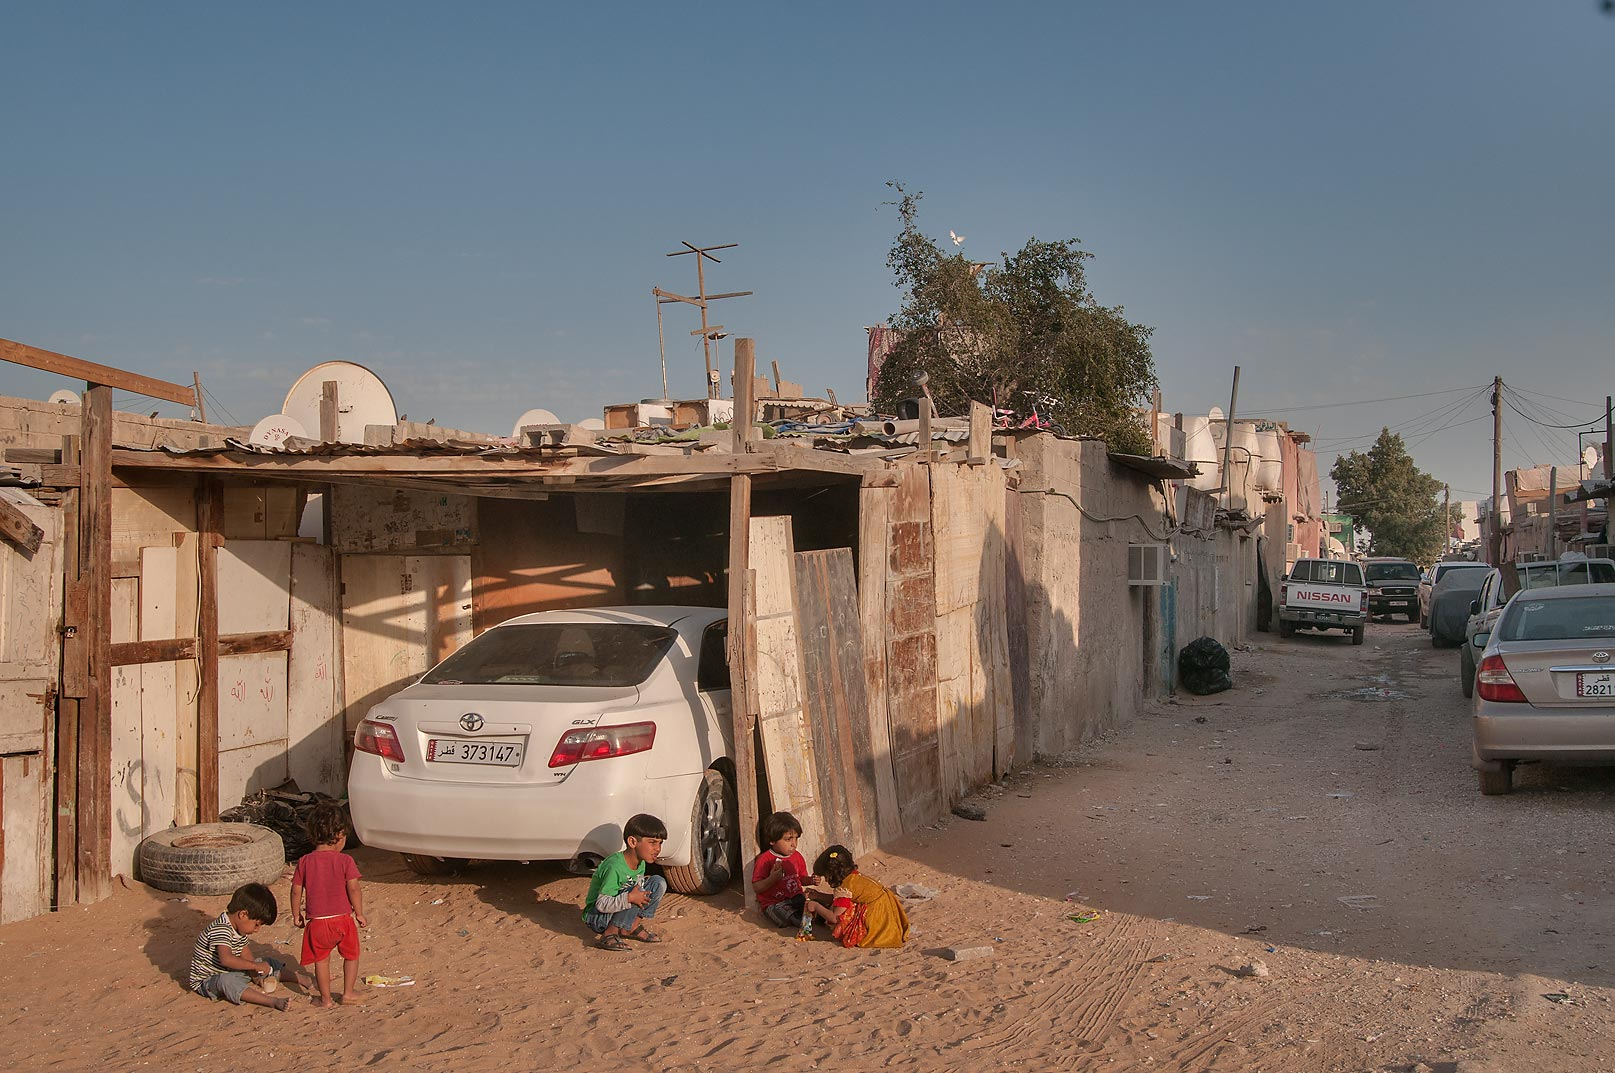 Children playing in Baluchi (Pakistani) Camp in Abu Hamour area. Doha, Qatar